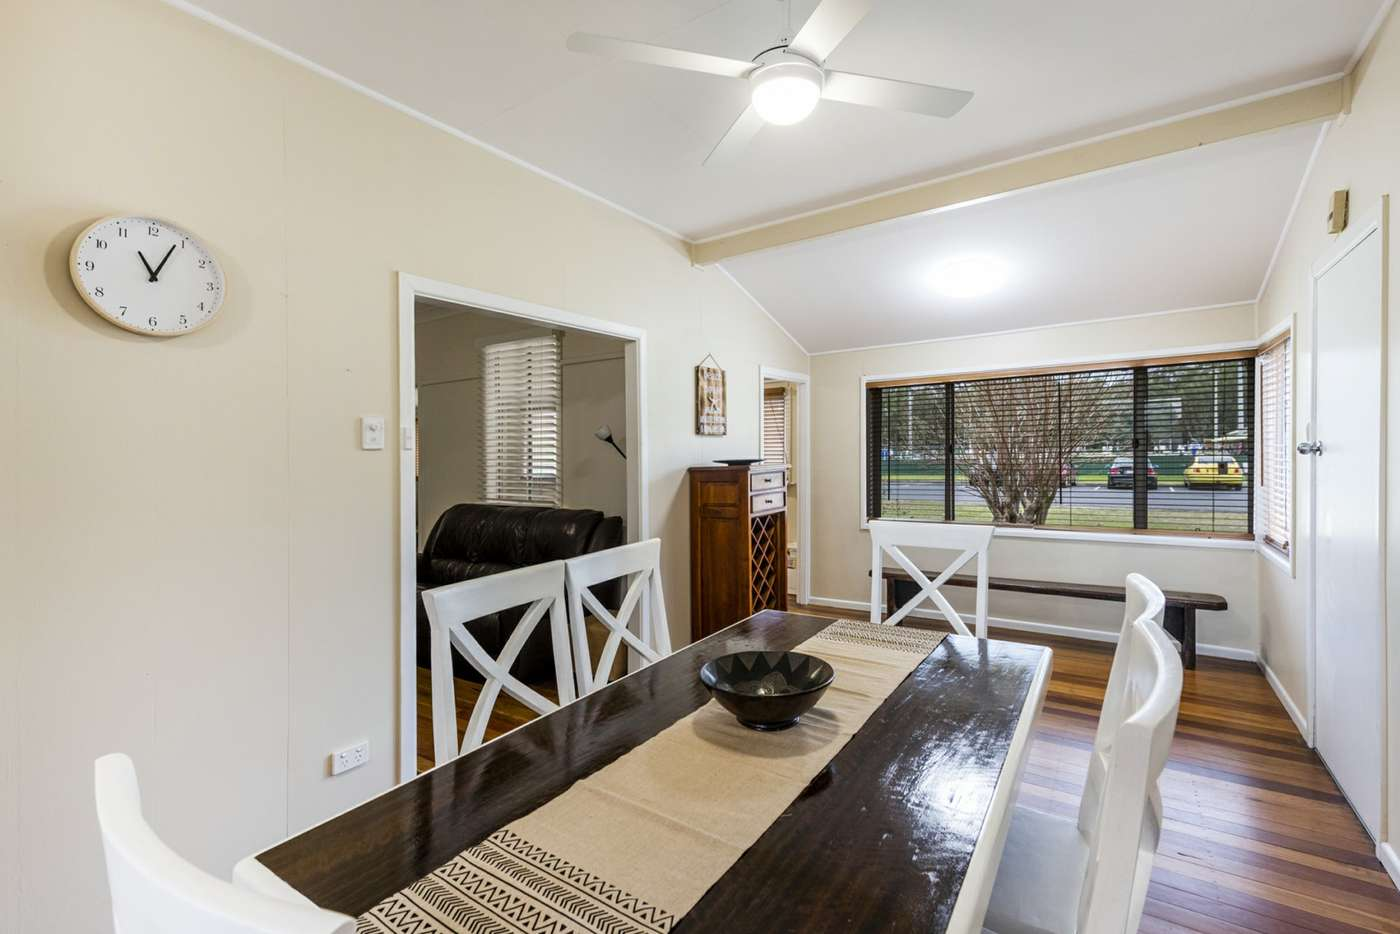 Seventh view of Homely house listing, 80 Spenser Street, Iluka NSW 2466